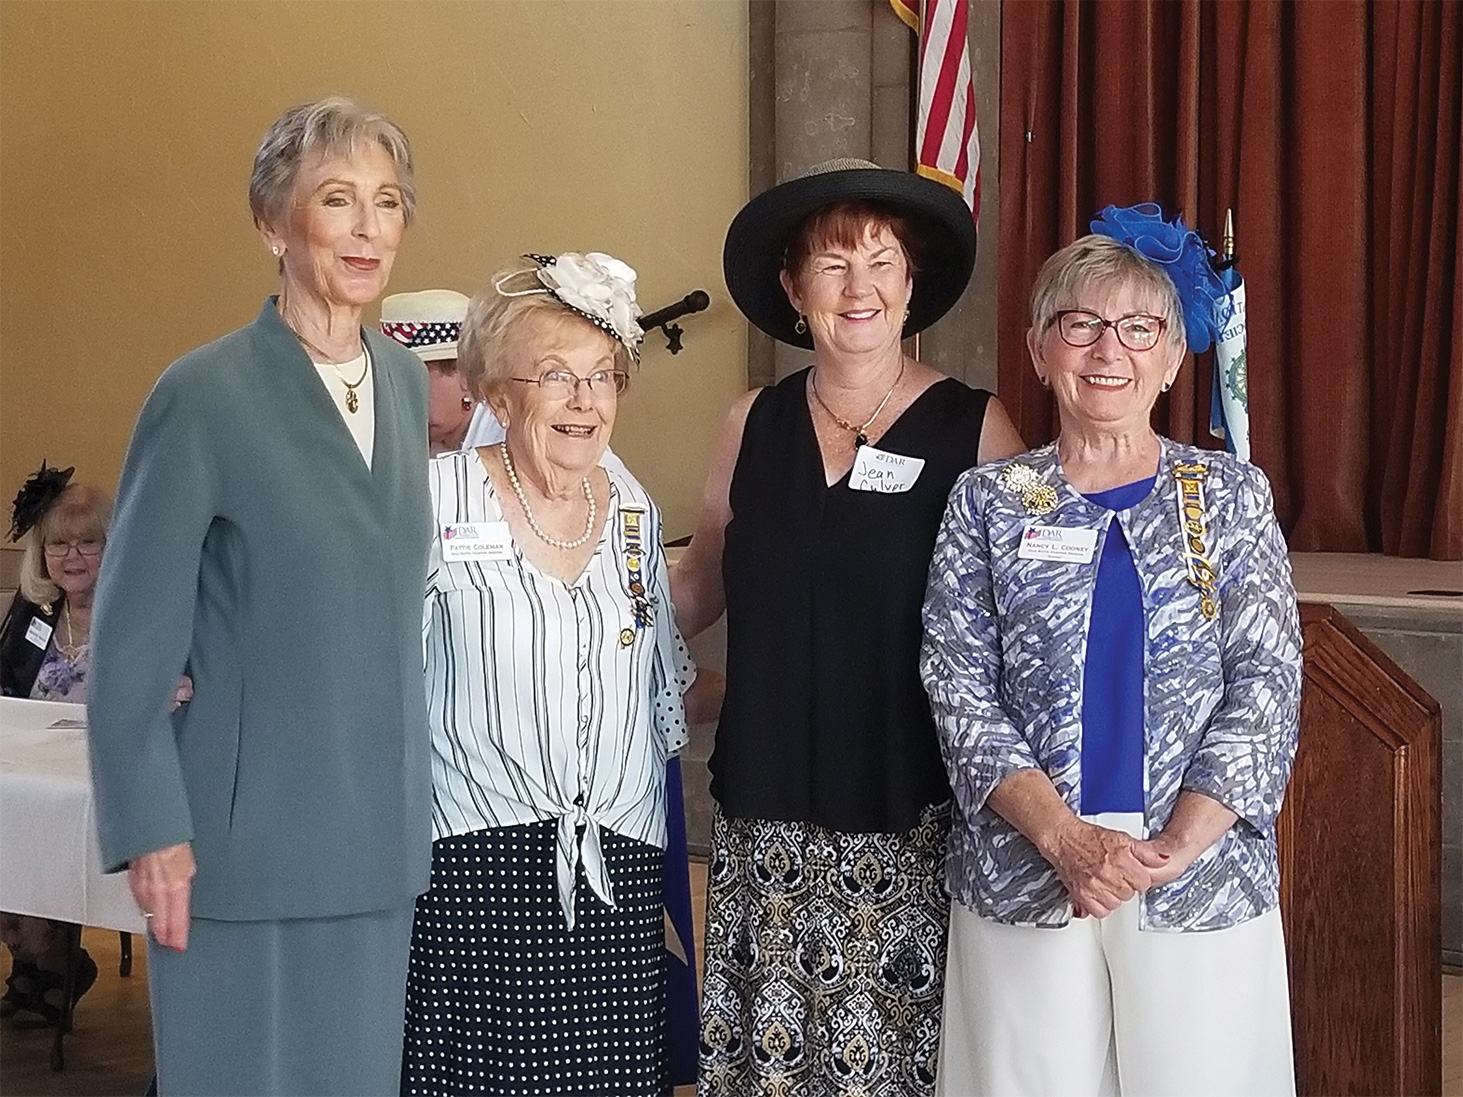 Our newest members sworn in today (left to right): Jean Milberger; Pattie Colman, chaplain; Jean Culver; and Regent Nancy Cooney